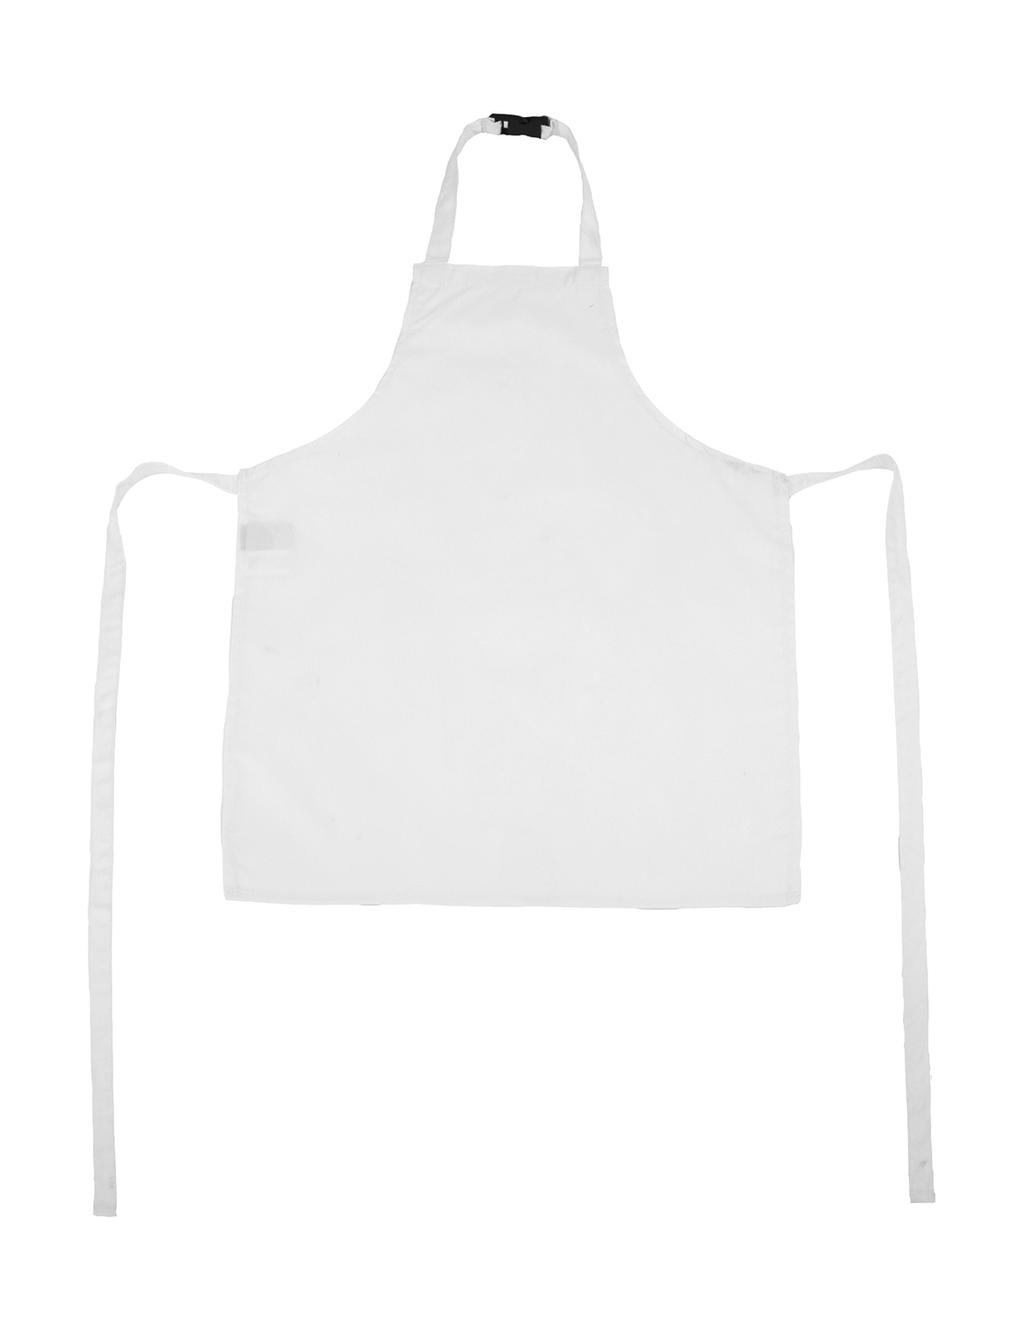 Vienna Children's Apron